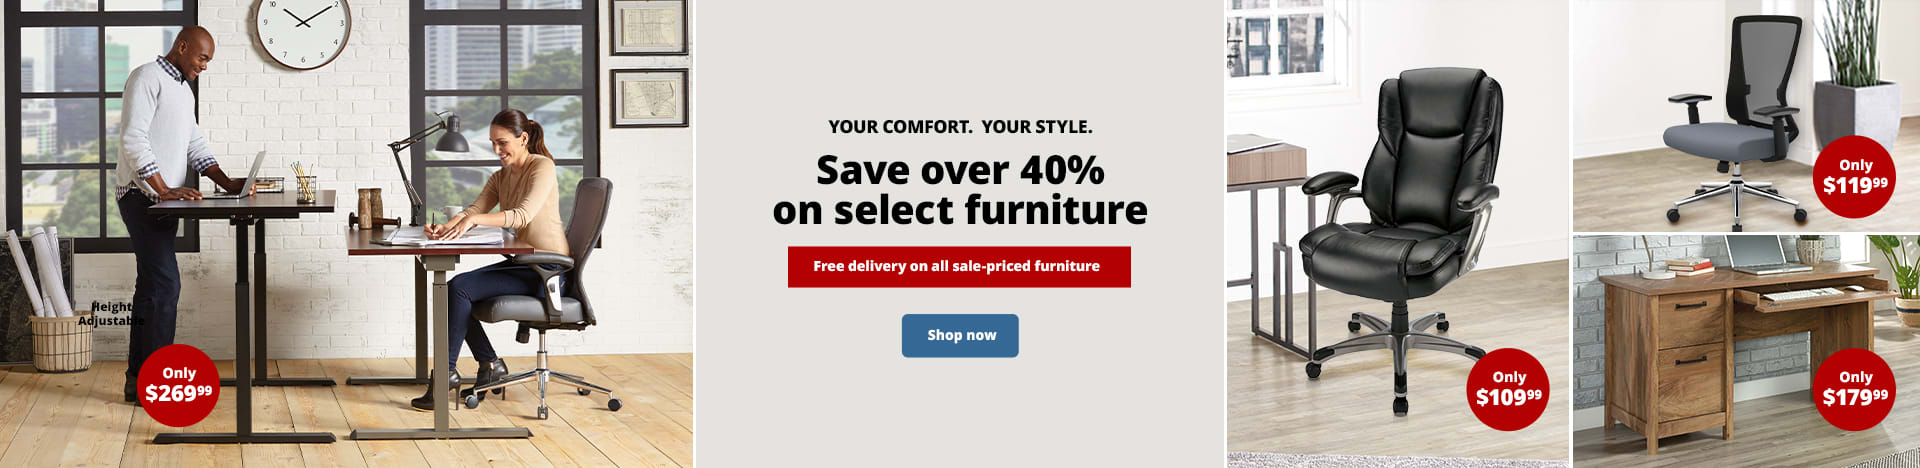 Your Comfort. Your Style. Save over 40% on select furniture. Free delivery on all sale-priced furniture